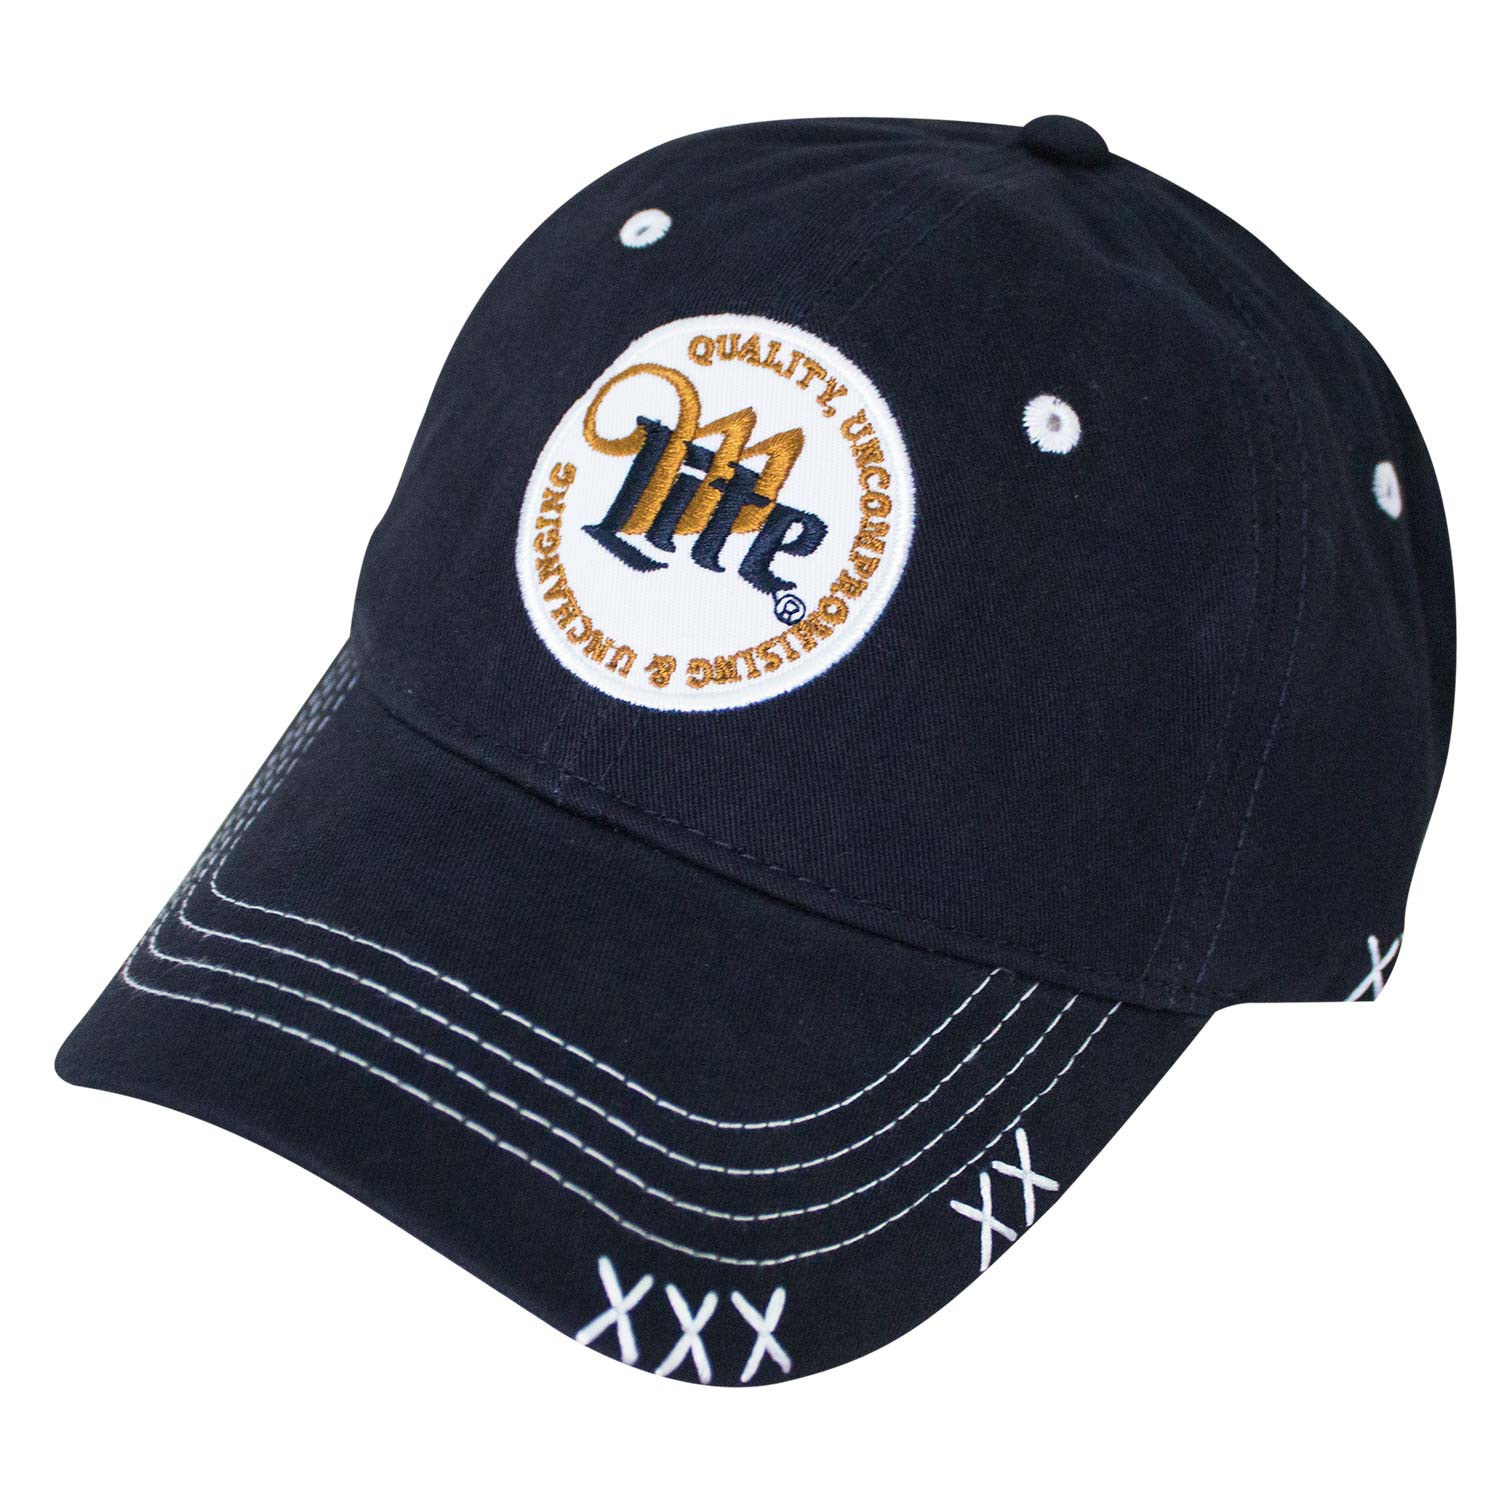 Miller Lite Circle Logo Navy Blue Men's Hat